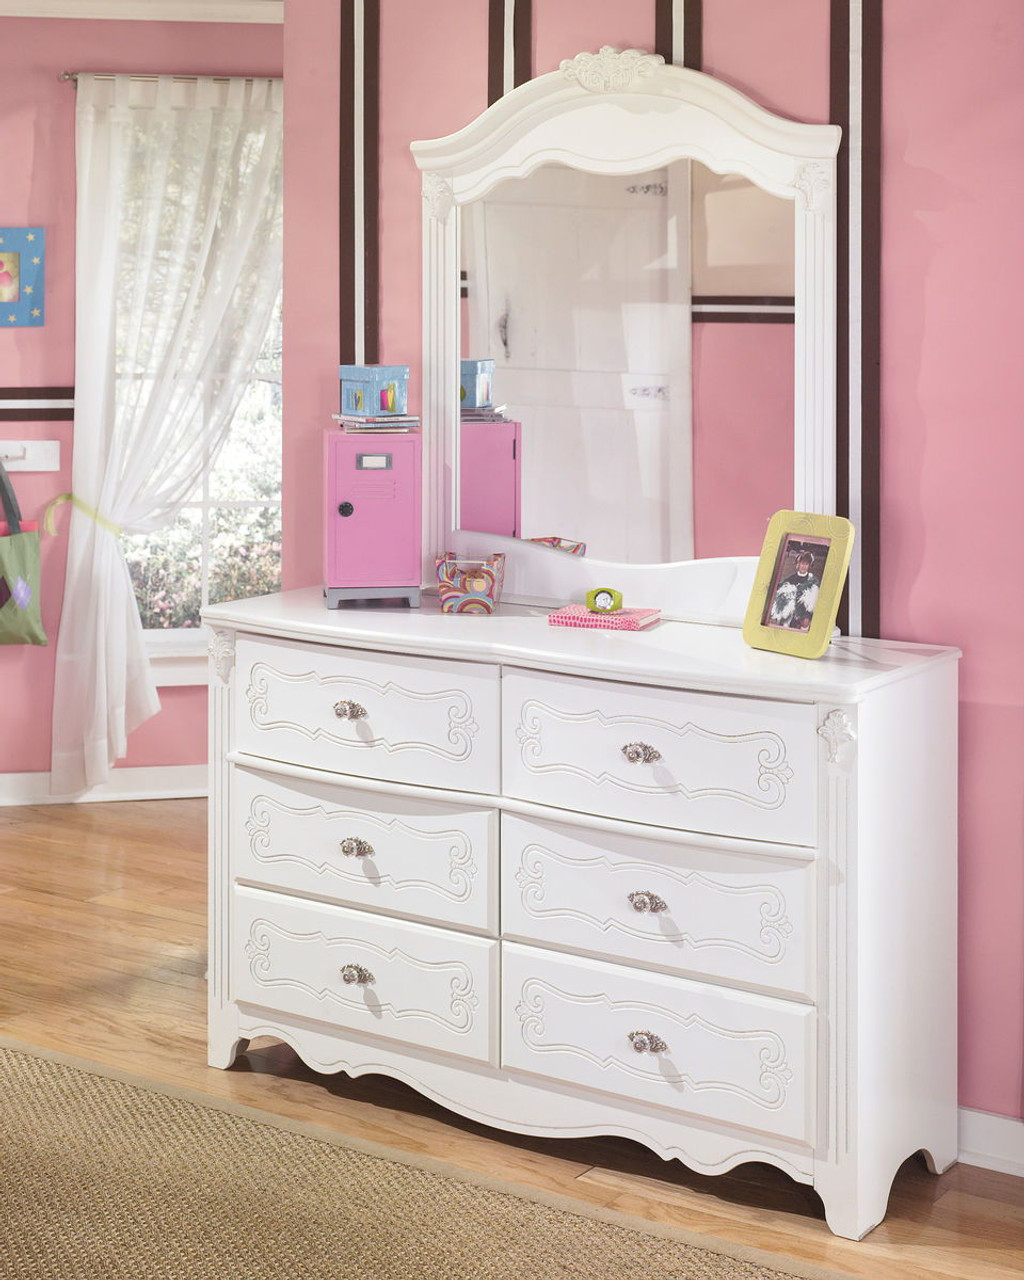 Ashley Exquisite White Dresser Mirror On Sale At Lee Furniture Of